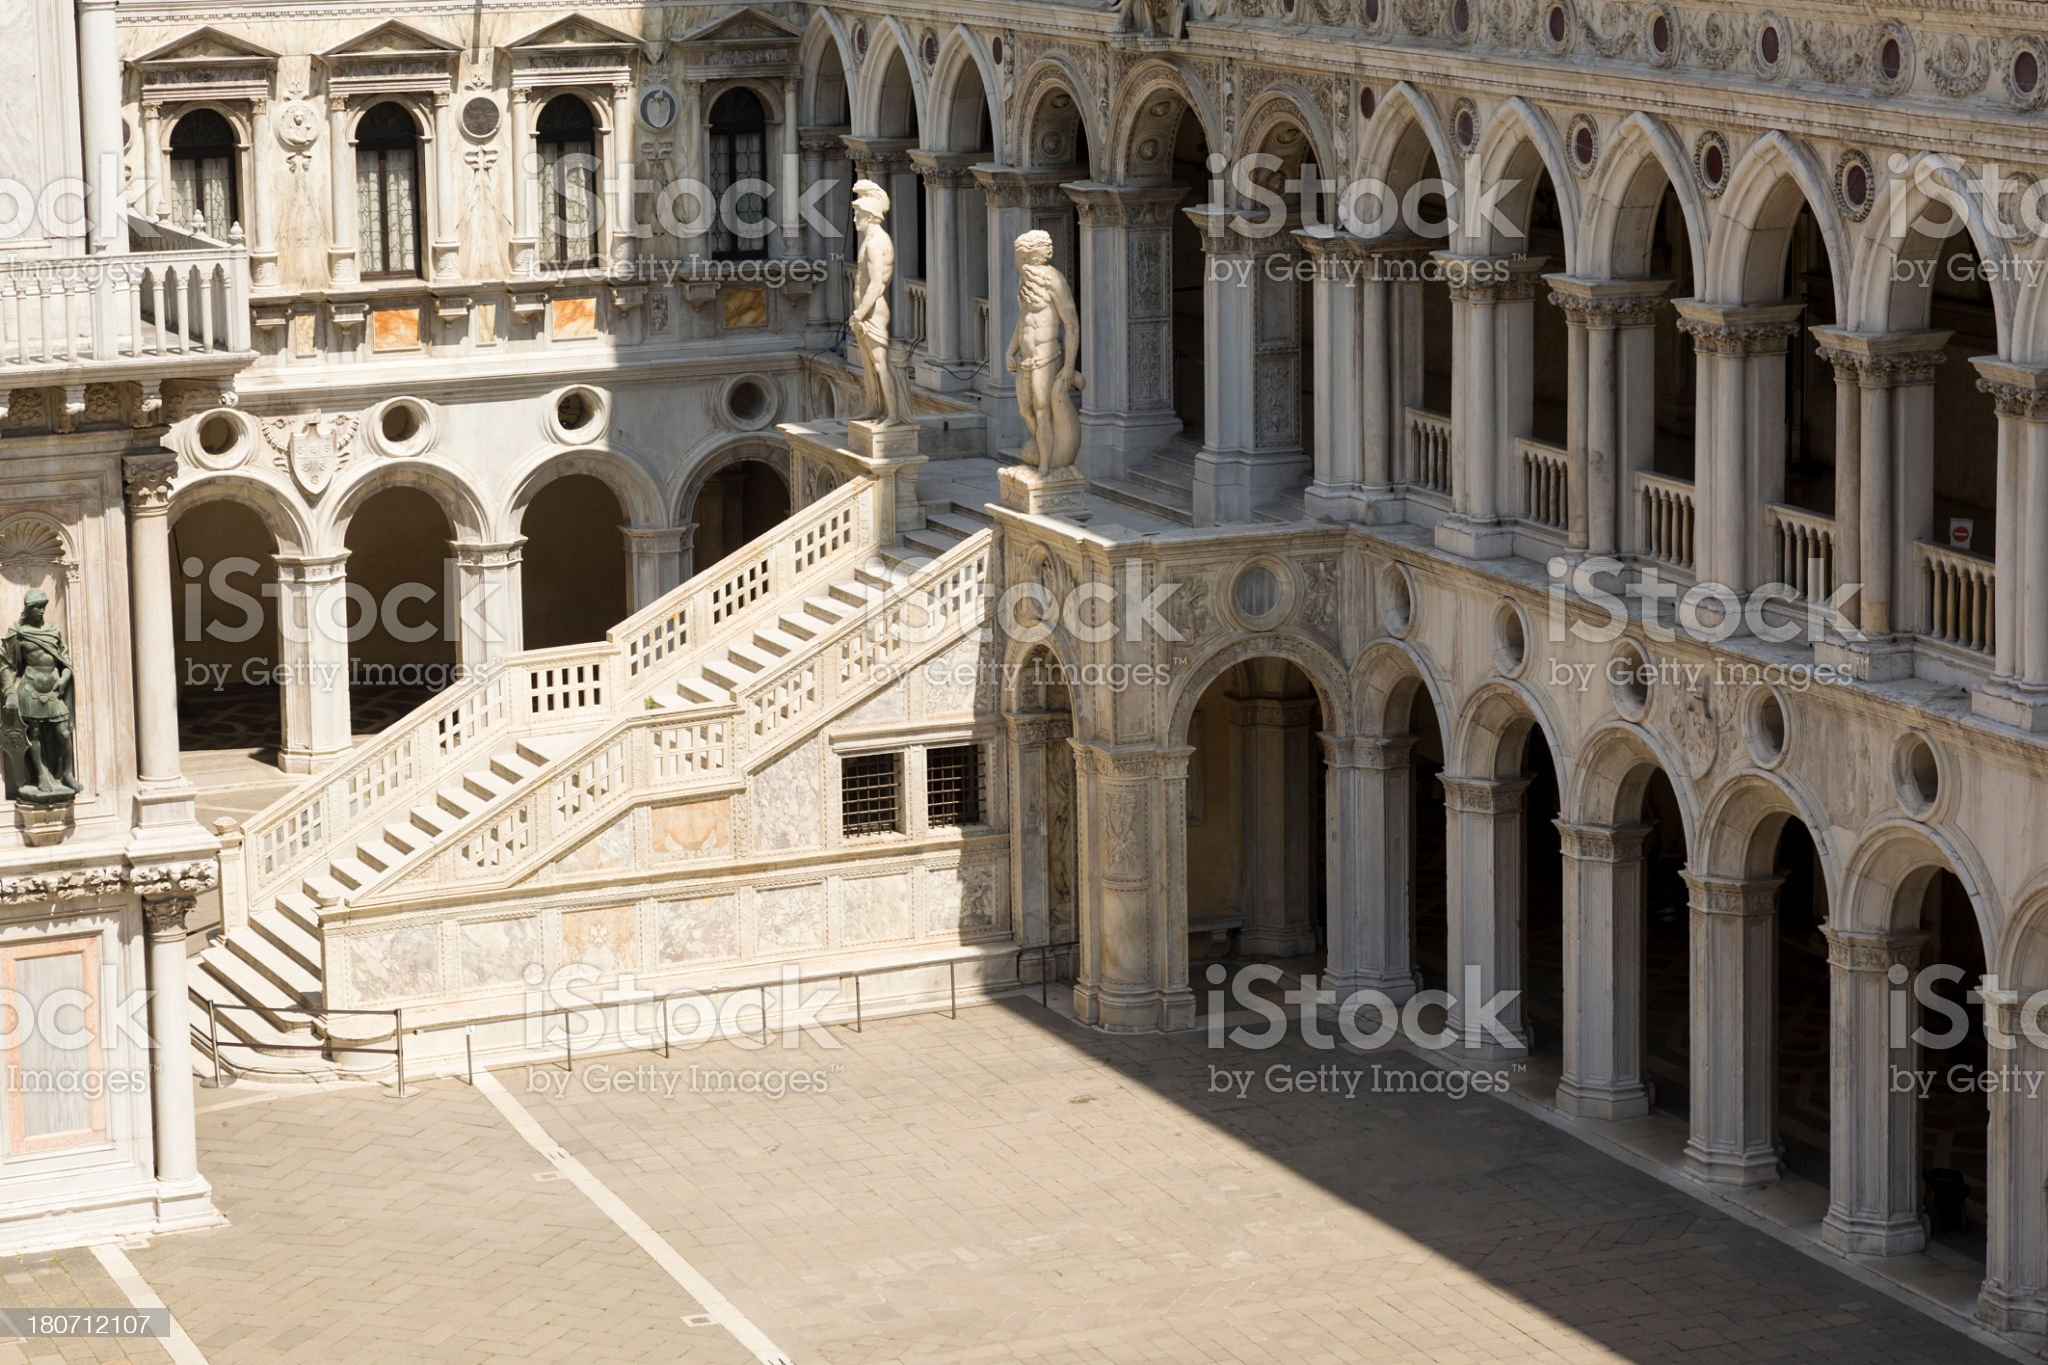 Giants€™ Staircase, Doge's Palace, Venice, Italy royalty-free stock photo